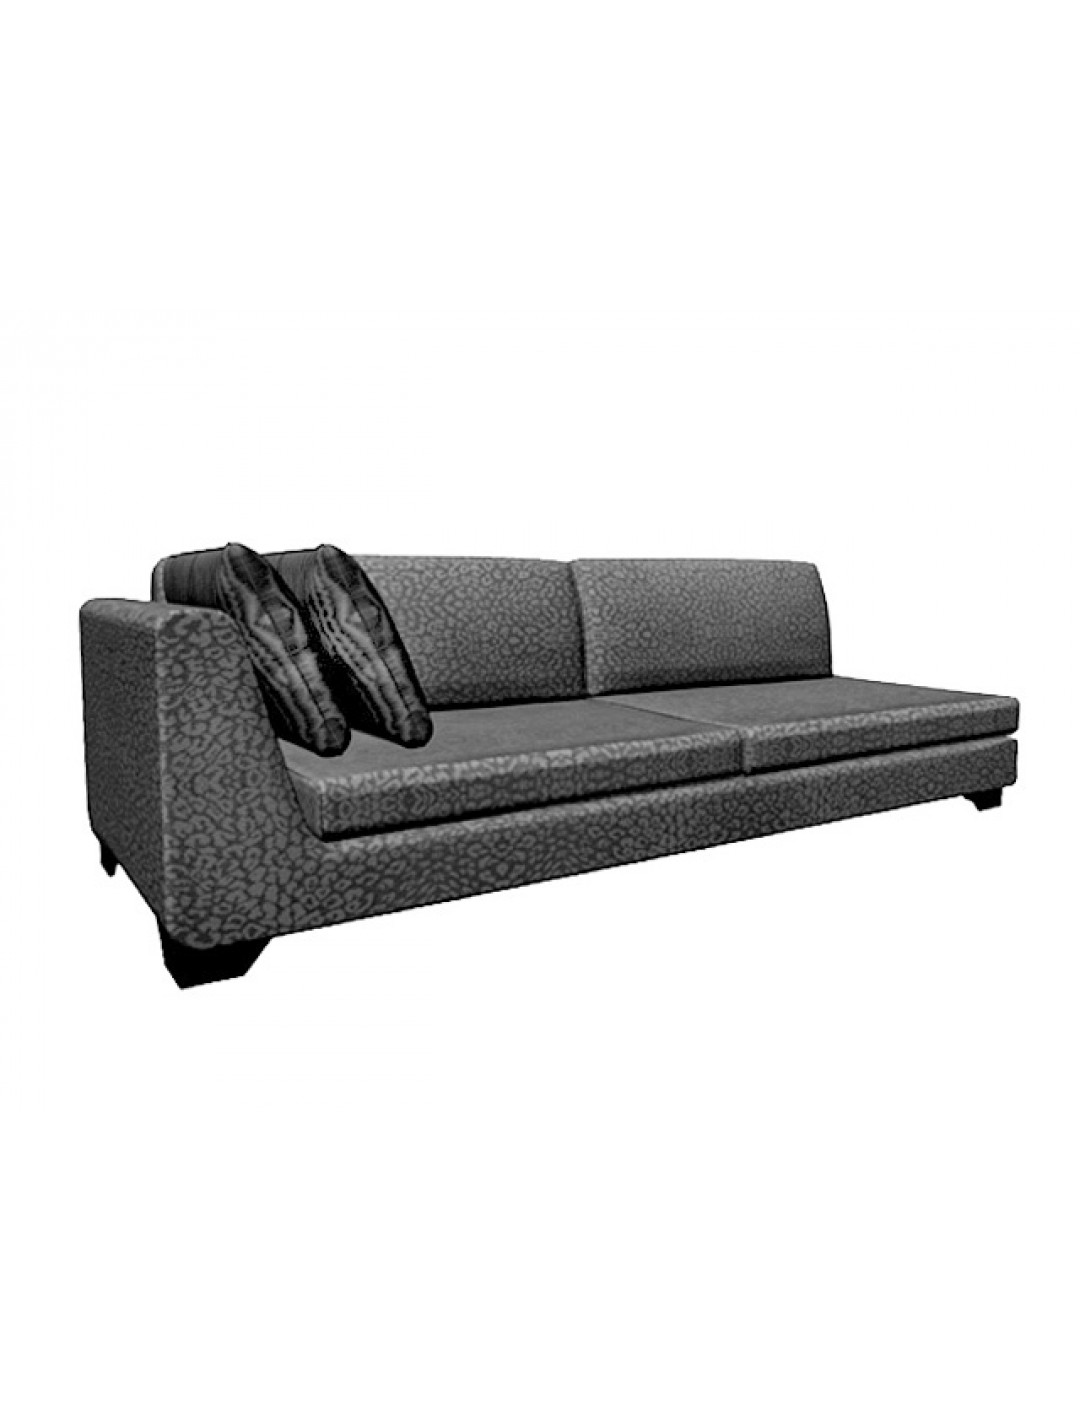 DUNE LATERAL 280-LL SOFA, UPHOLSTERY: C.O.M., WITH TWO 60*50 CUSHIONS, BROWN ECO LEATHER LEGS,